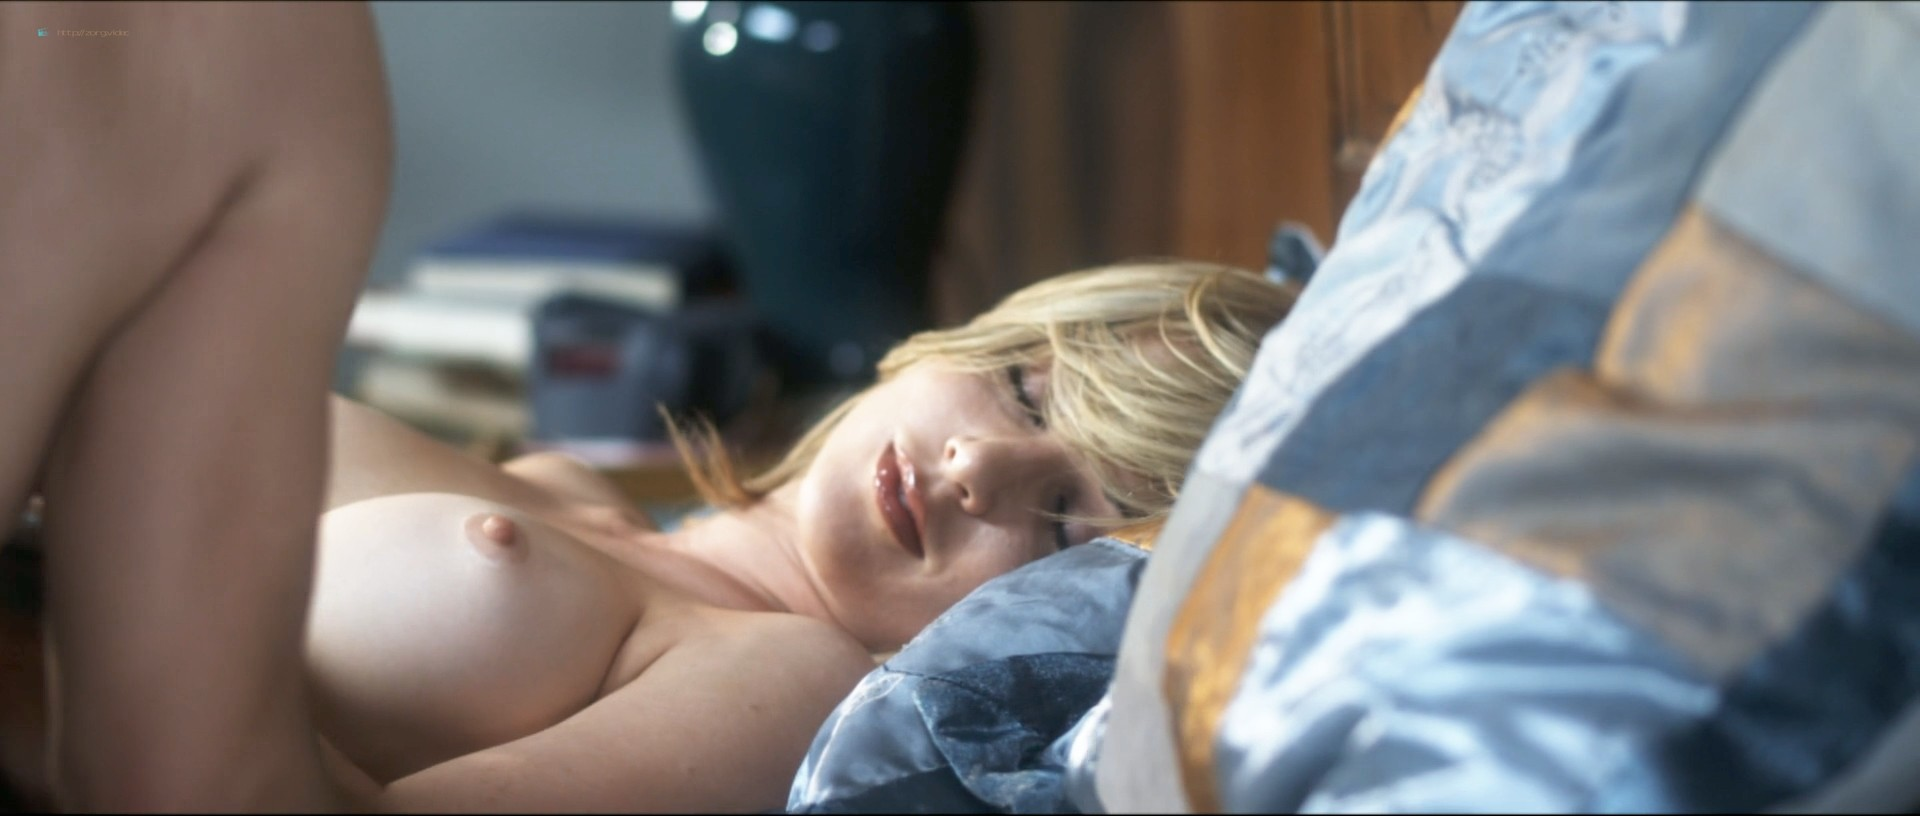 Kayden Kross nude and sex Nicole D'Angelo, Brooke Haven and others nude too - Blue Dream (2013) 1080p (9)